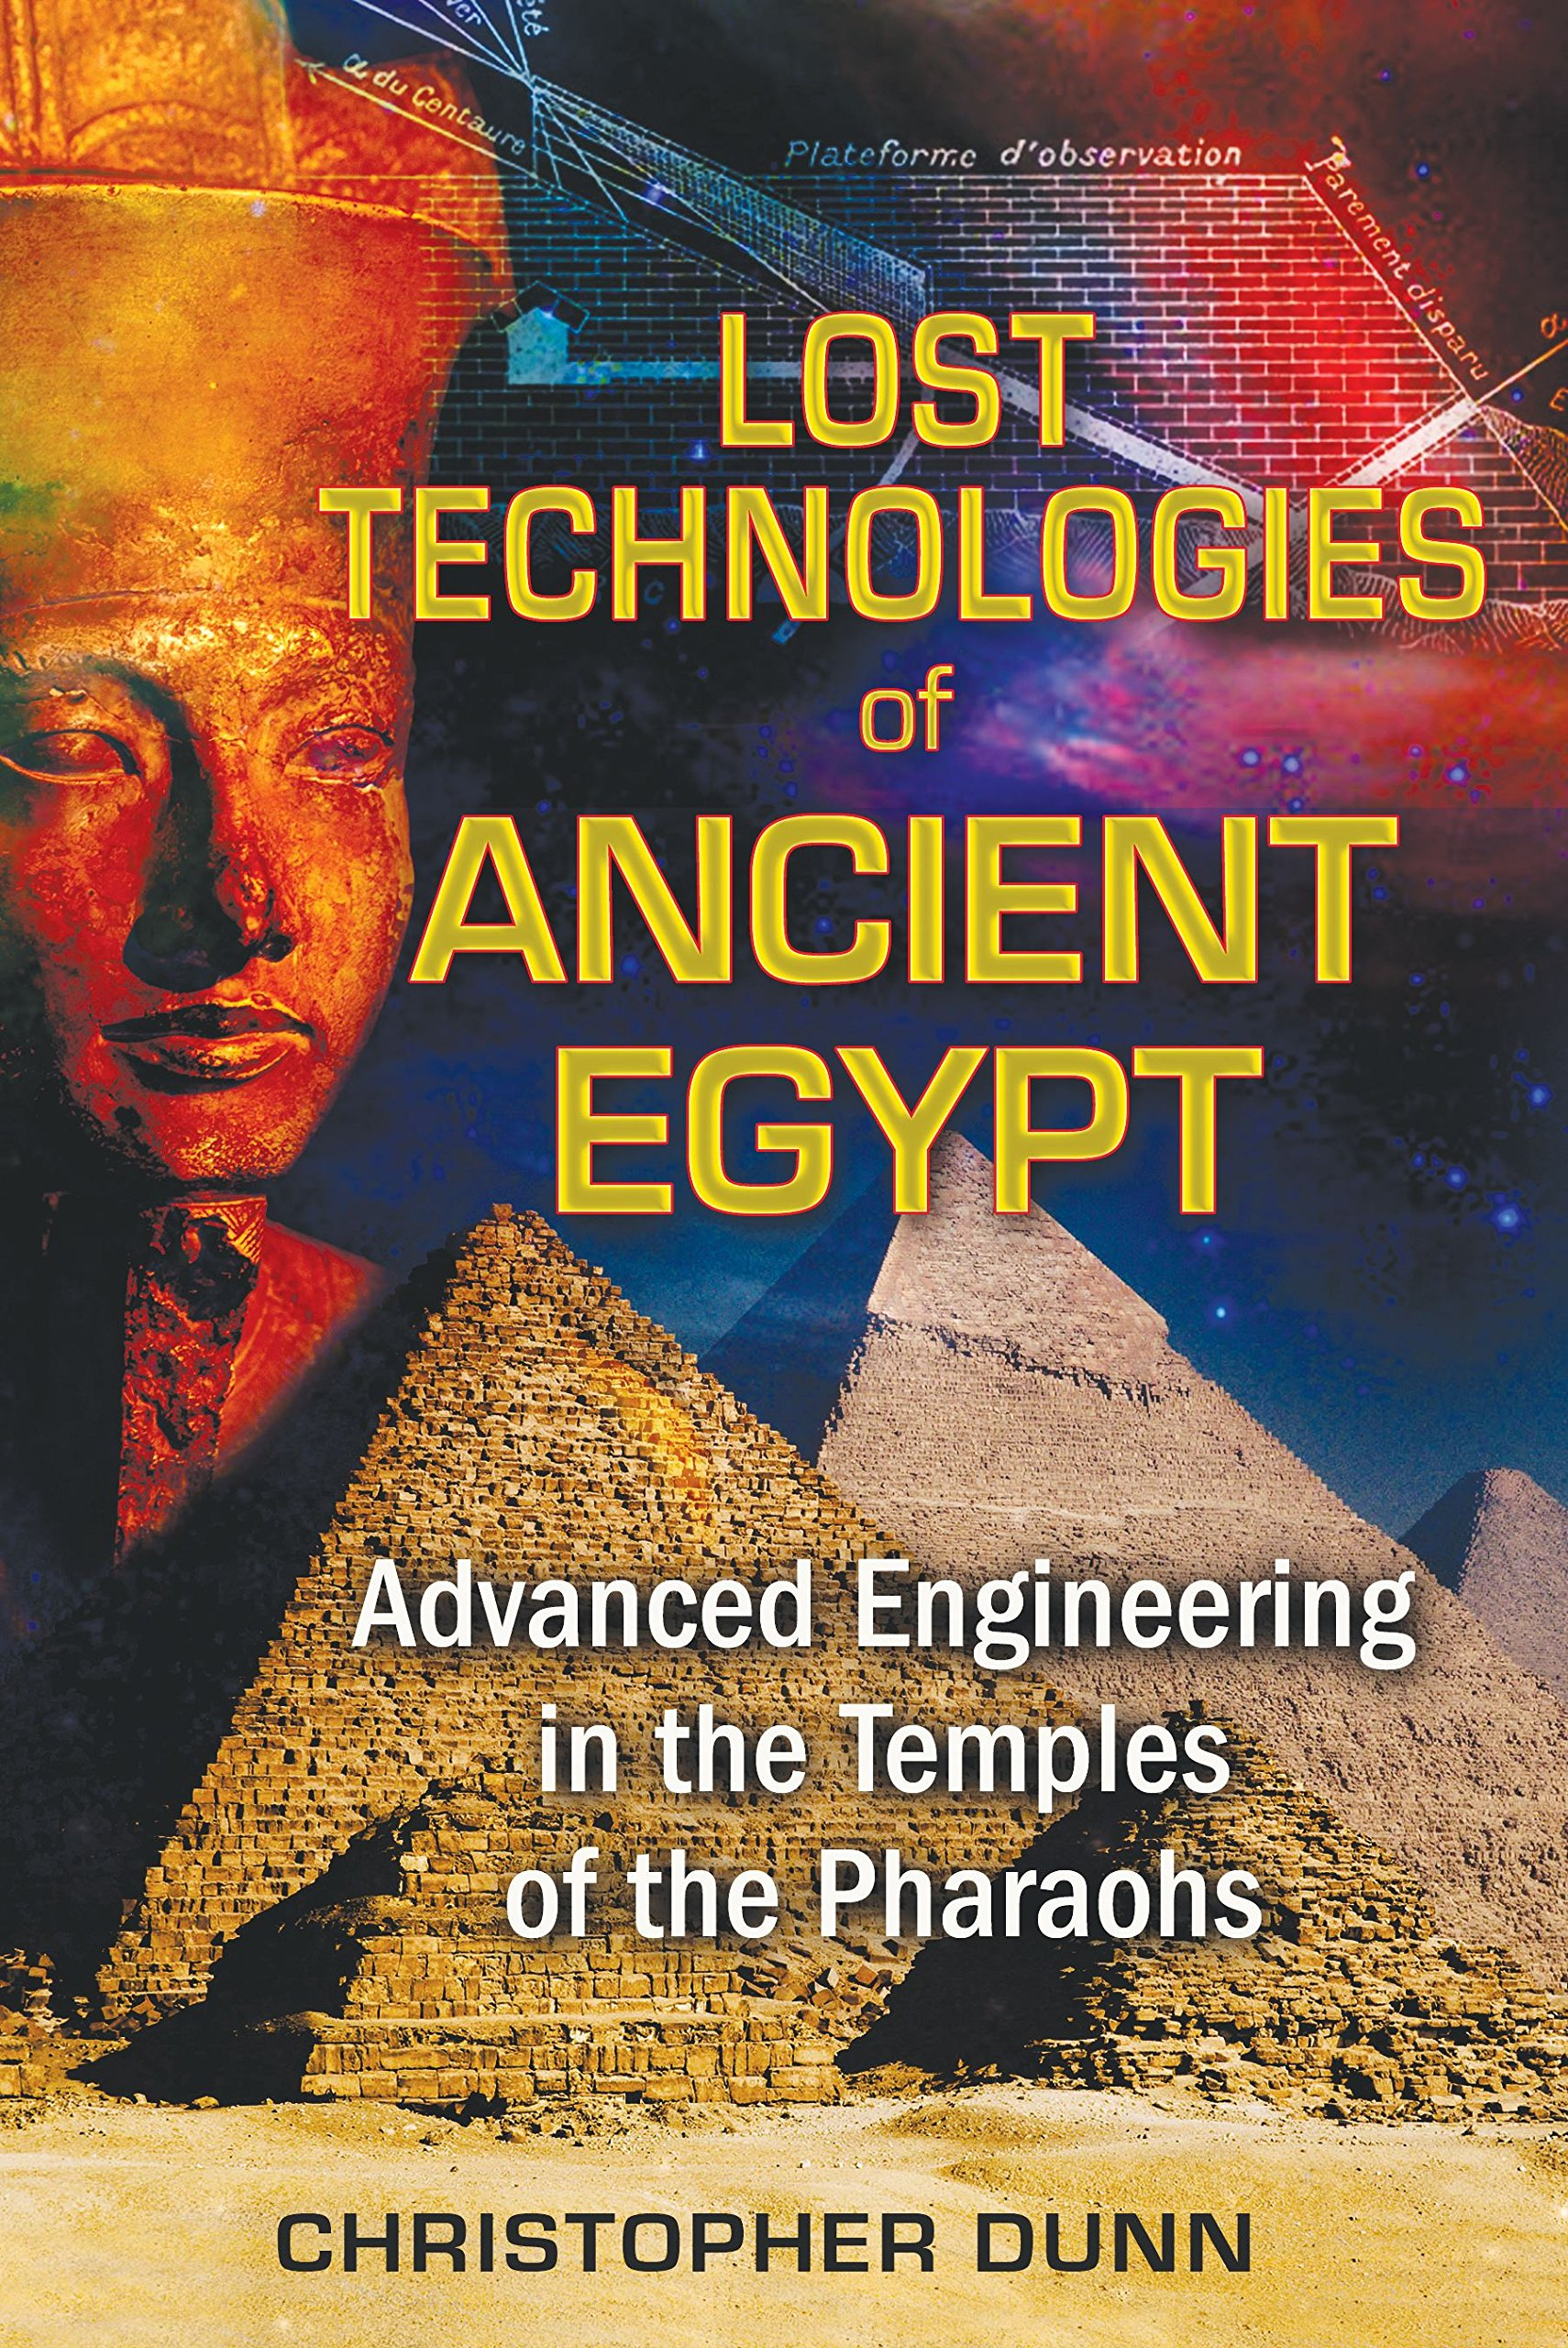 Lost Technologies of Ancient Egypt: Advanced Engineering in